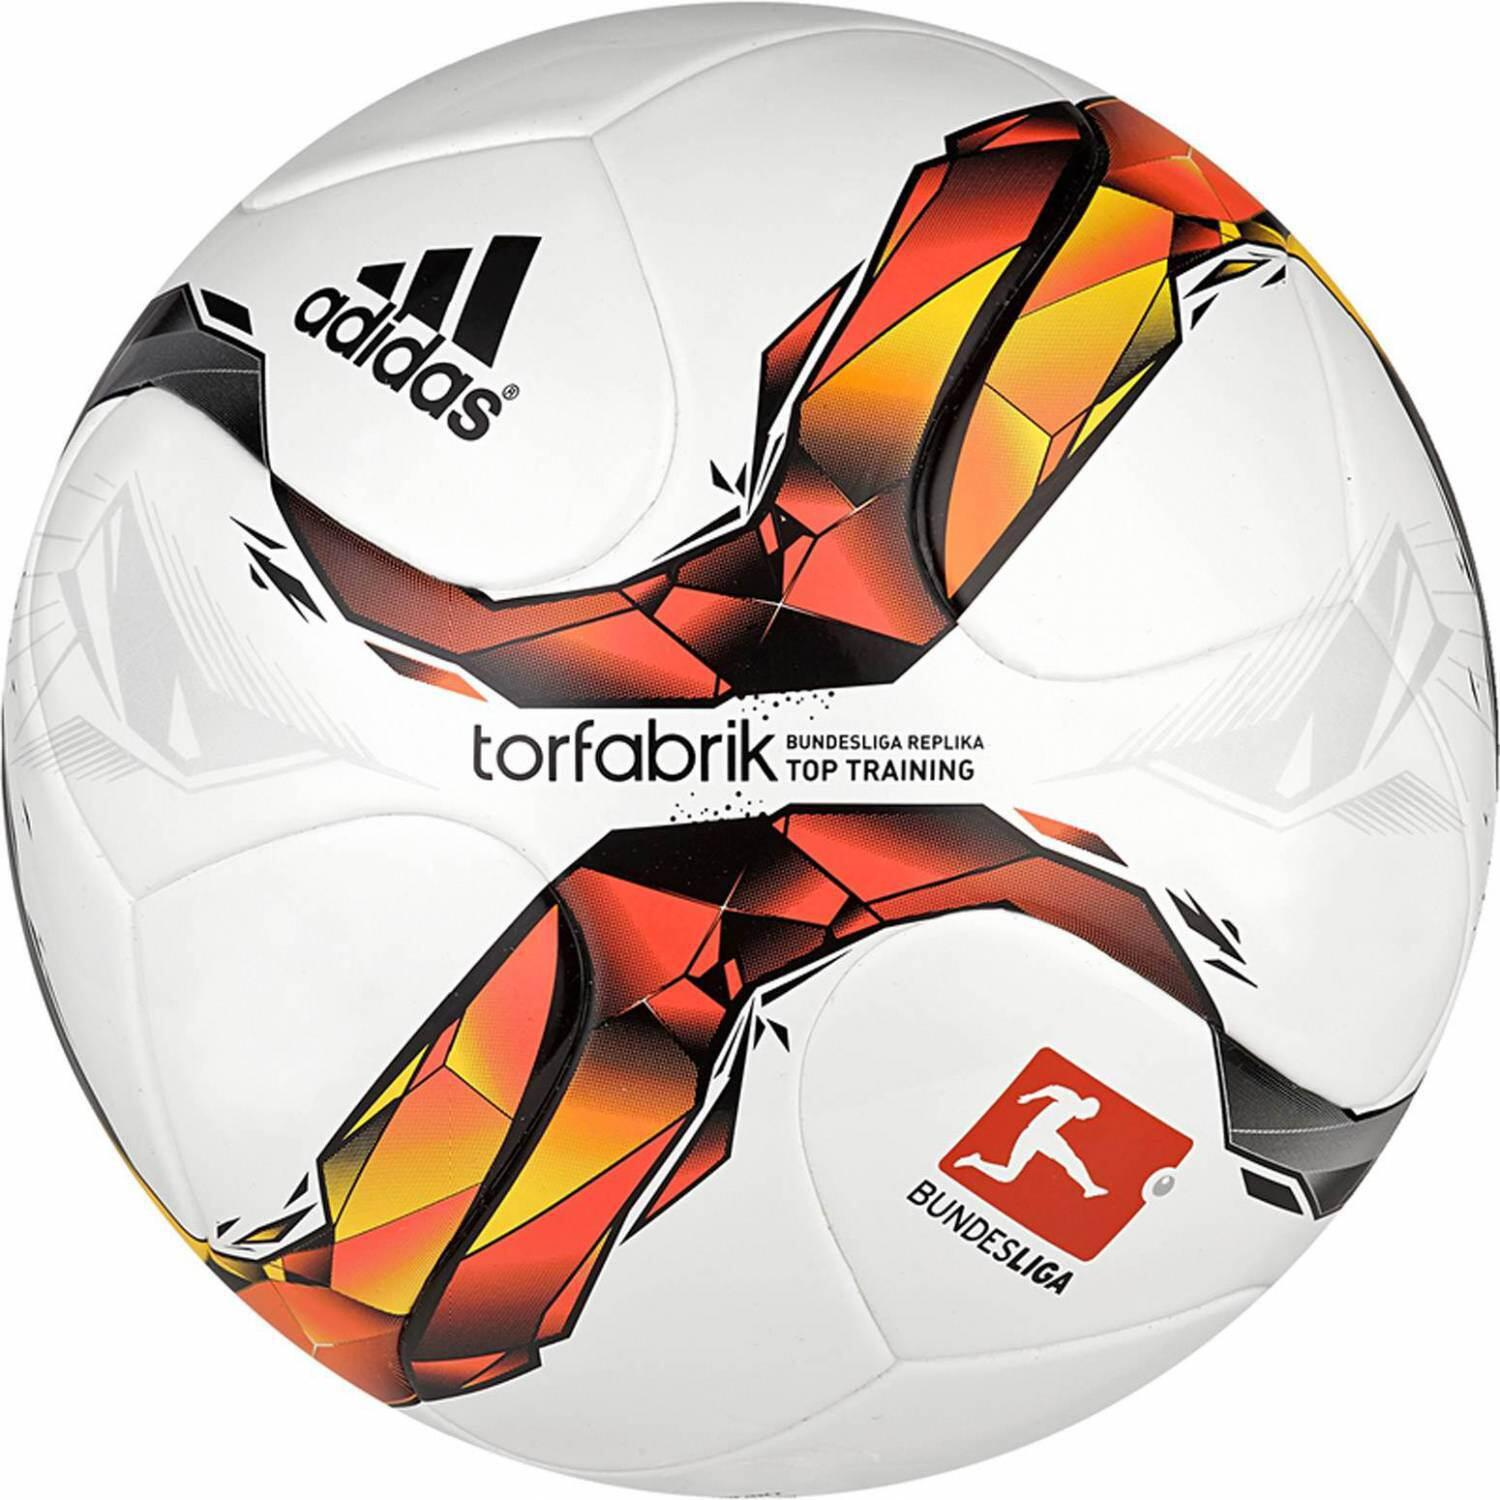 adidas-torfabrik-2015-top-training-fu-szlig-ball-gr-ouml-szlig-e-5-white-solar-red-black-solar-o